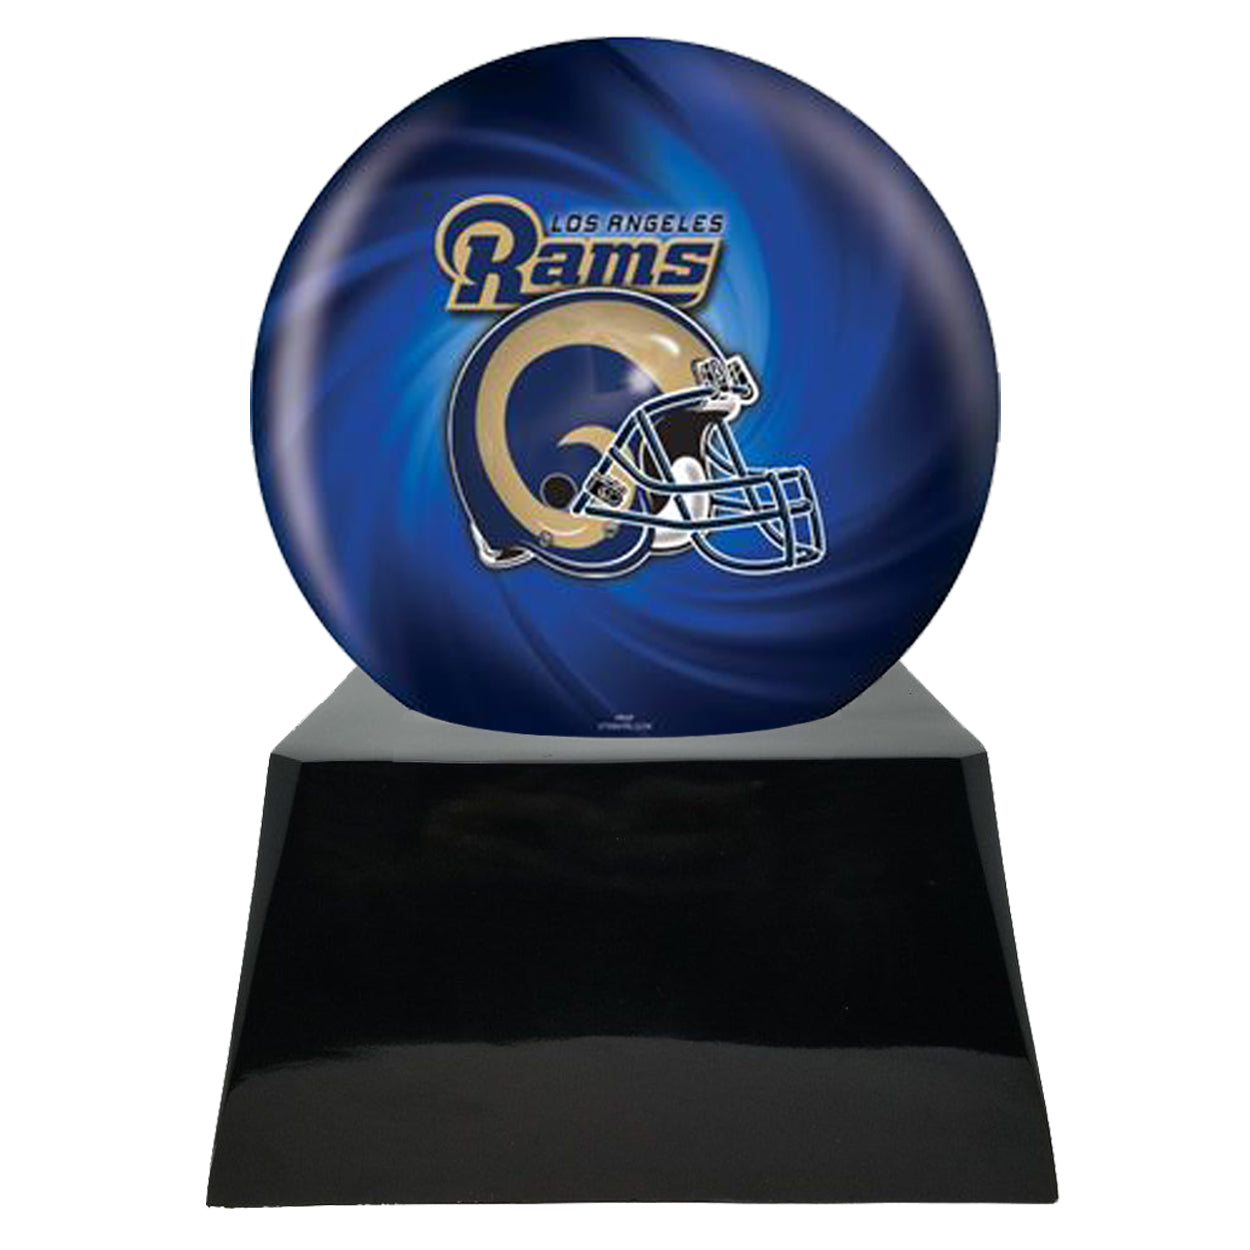 Football Cremation Urns For Human Ashes - Football Cremation Urn and Los Angeles Rams Ball Decor with Custom Metal Plaque